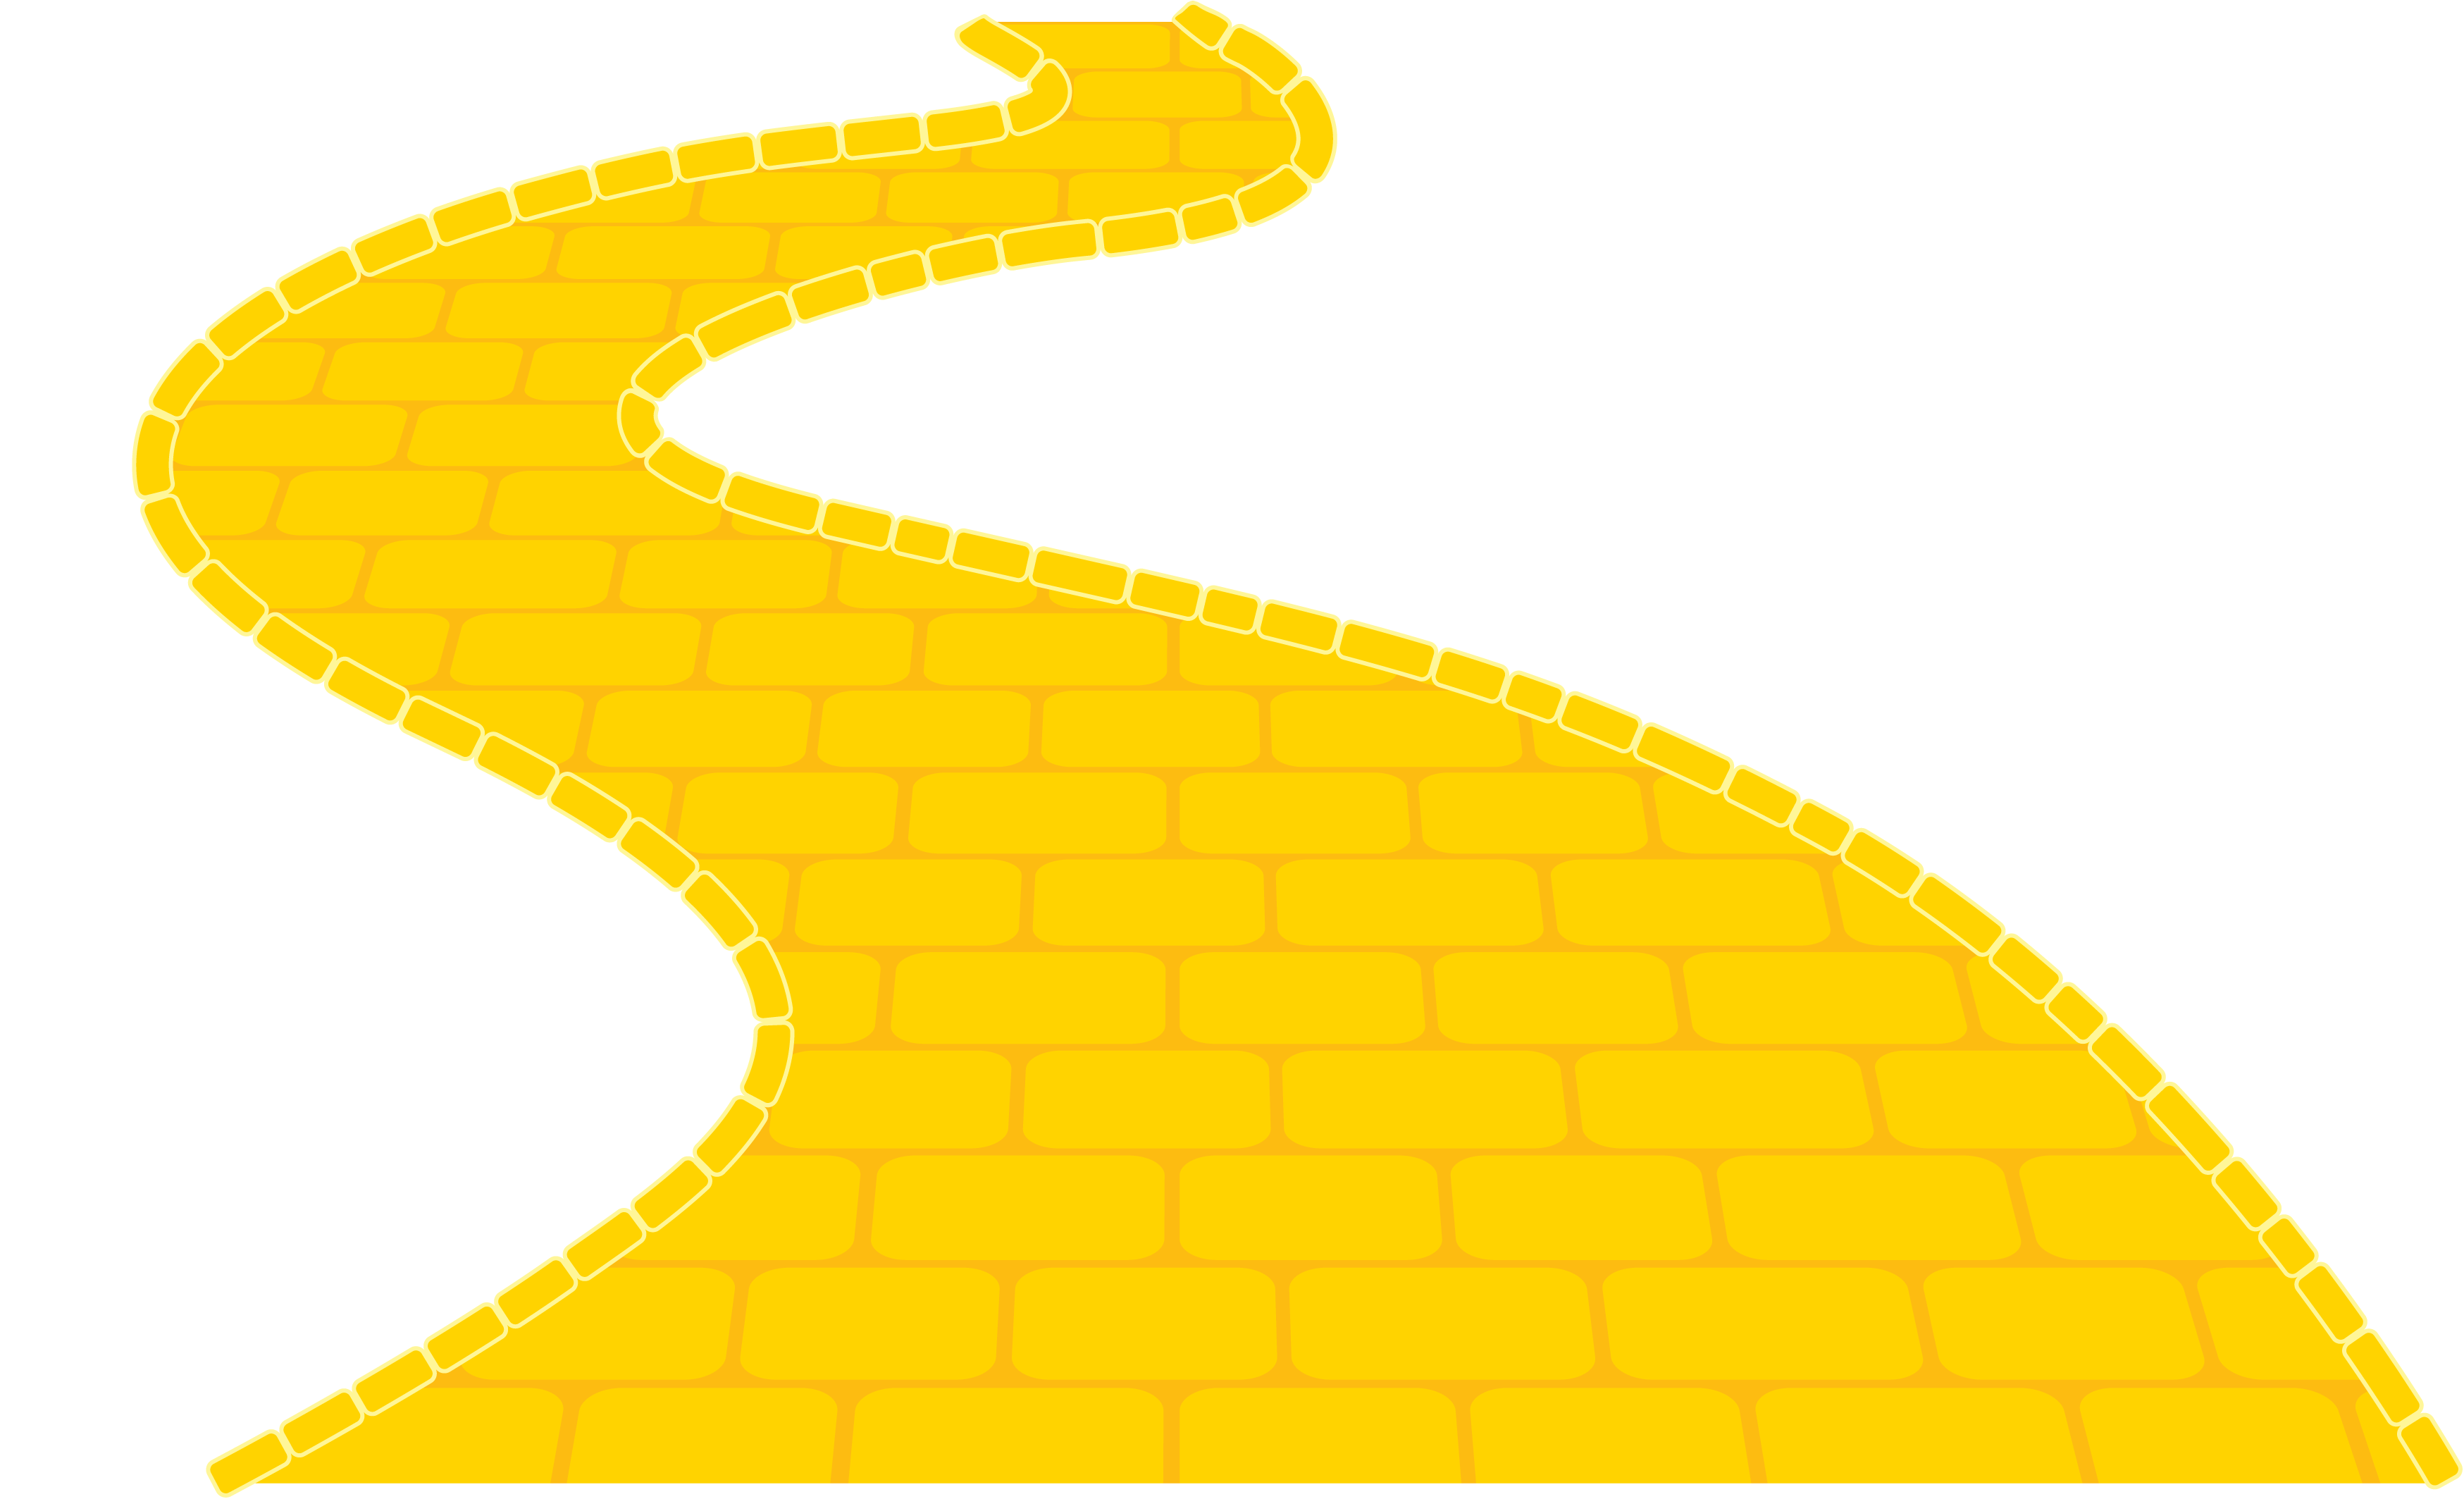 Wizard of oz yellow brick road clipart picture transparent stock The Wizard Yellow brick road Clip art - wizard of oz png ... picture transparent stock